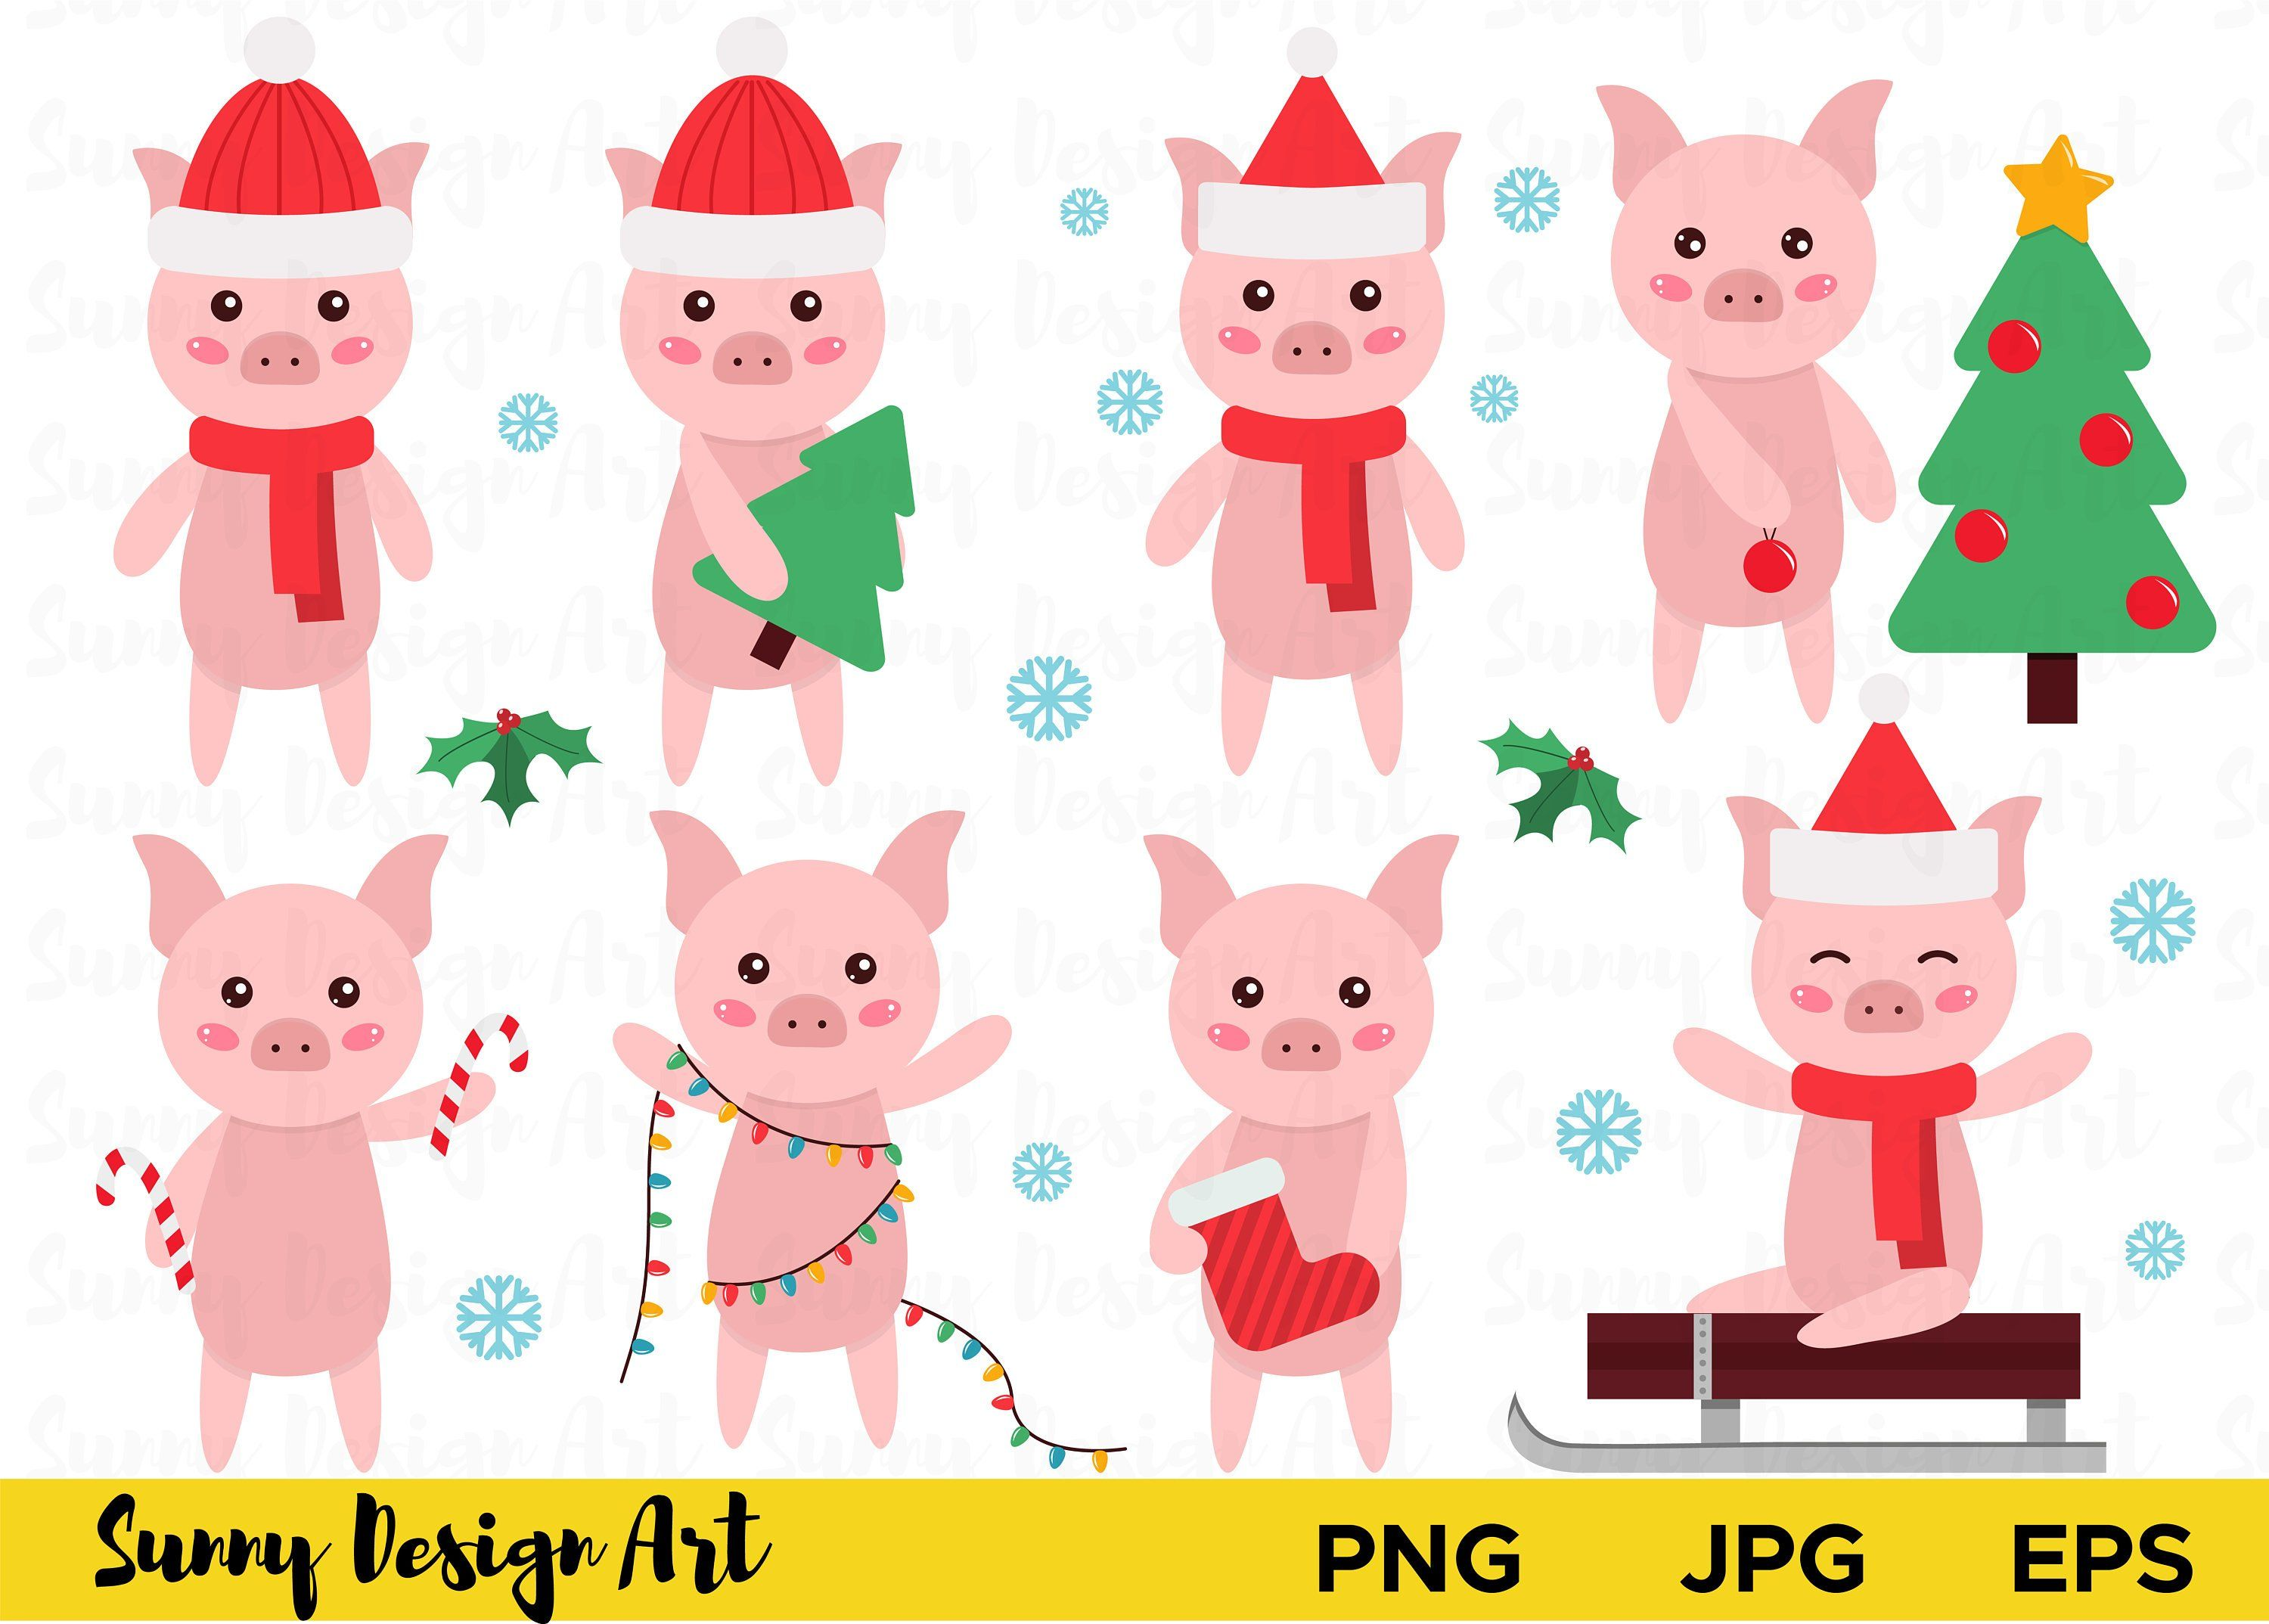 hight resolution of cute pigs clipart new year 2019 symbol pig christmas